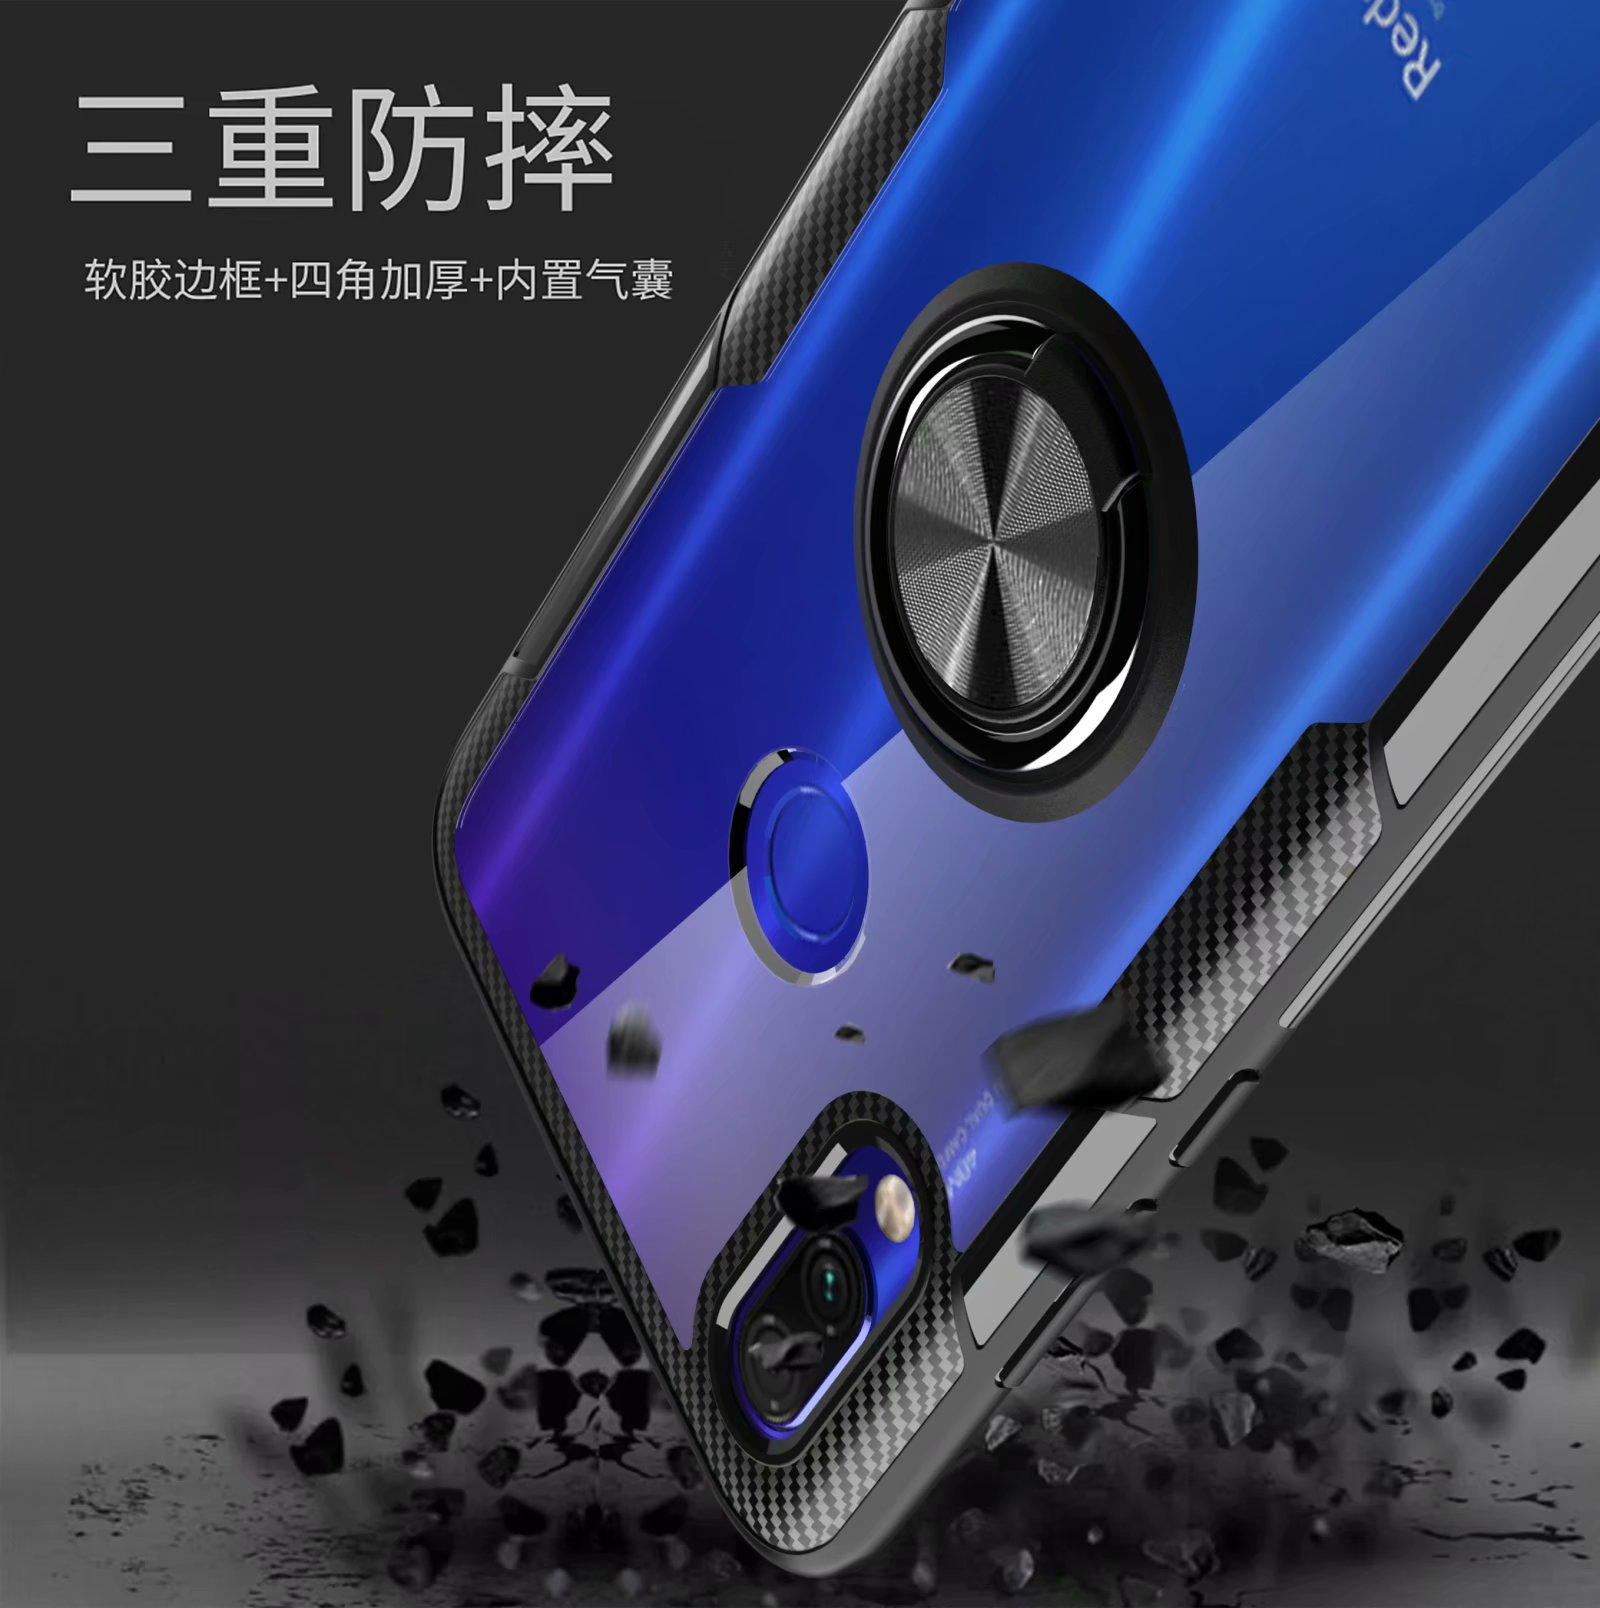 HTB1 AGvUSzqK1RjSZFHq6z3CpXaY For Xiaomi Redmi Note 7 Pro Case With Ring Stand Magnet Transparent shockproof Protective Back Cover case for xiaomi redmi 7